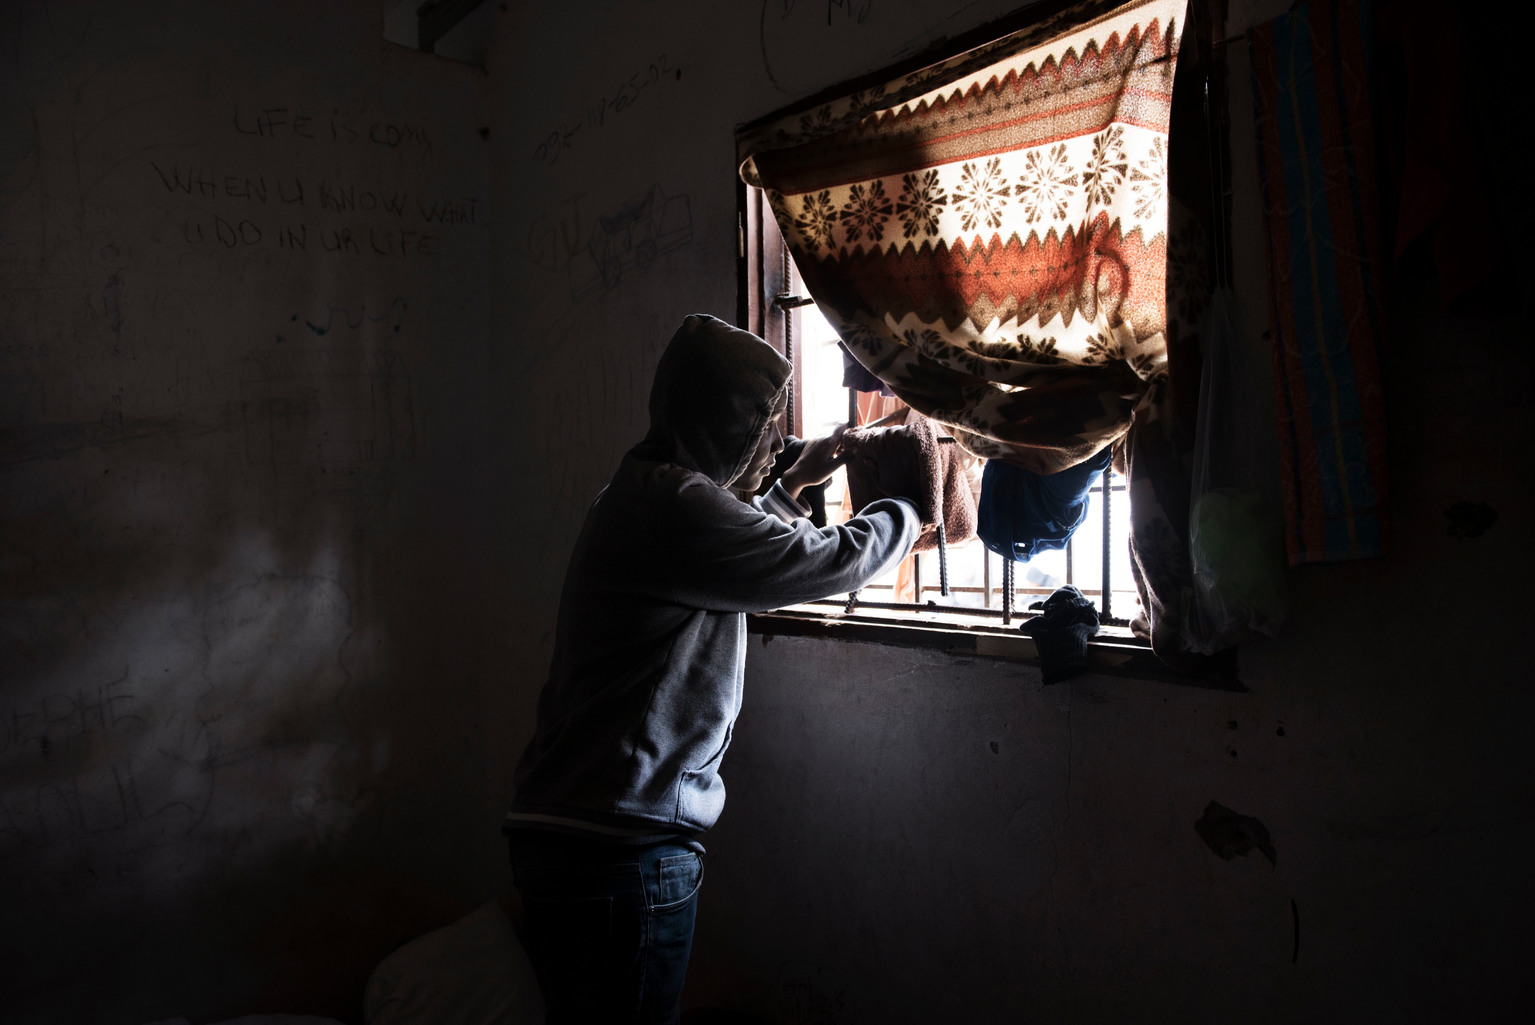 A migrant looks through the window of one of the detention centres.